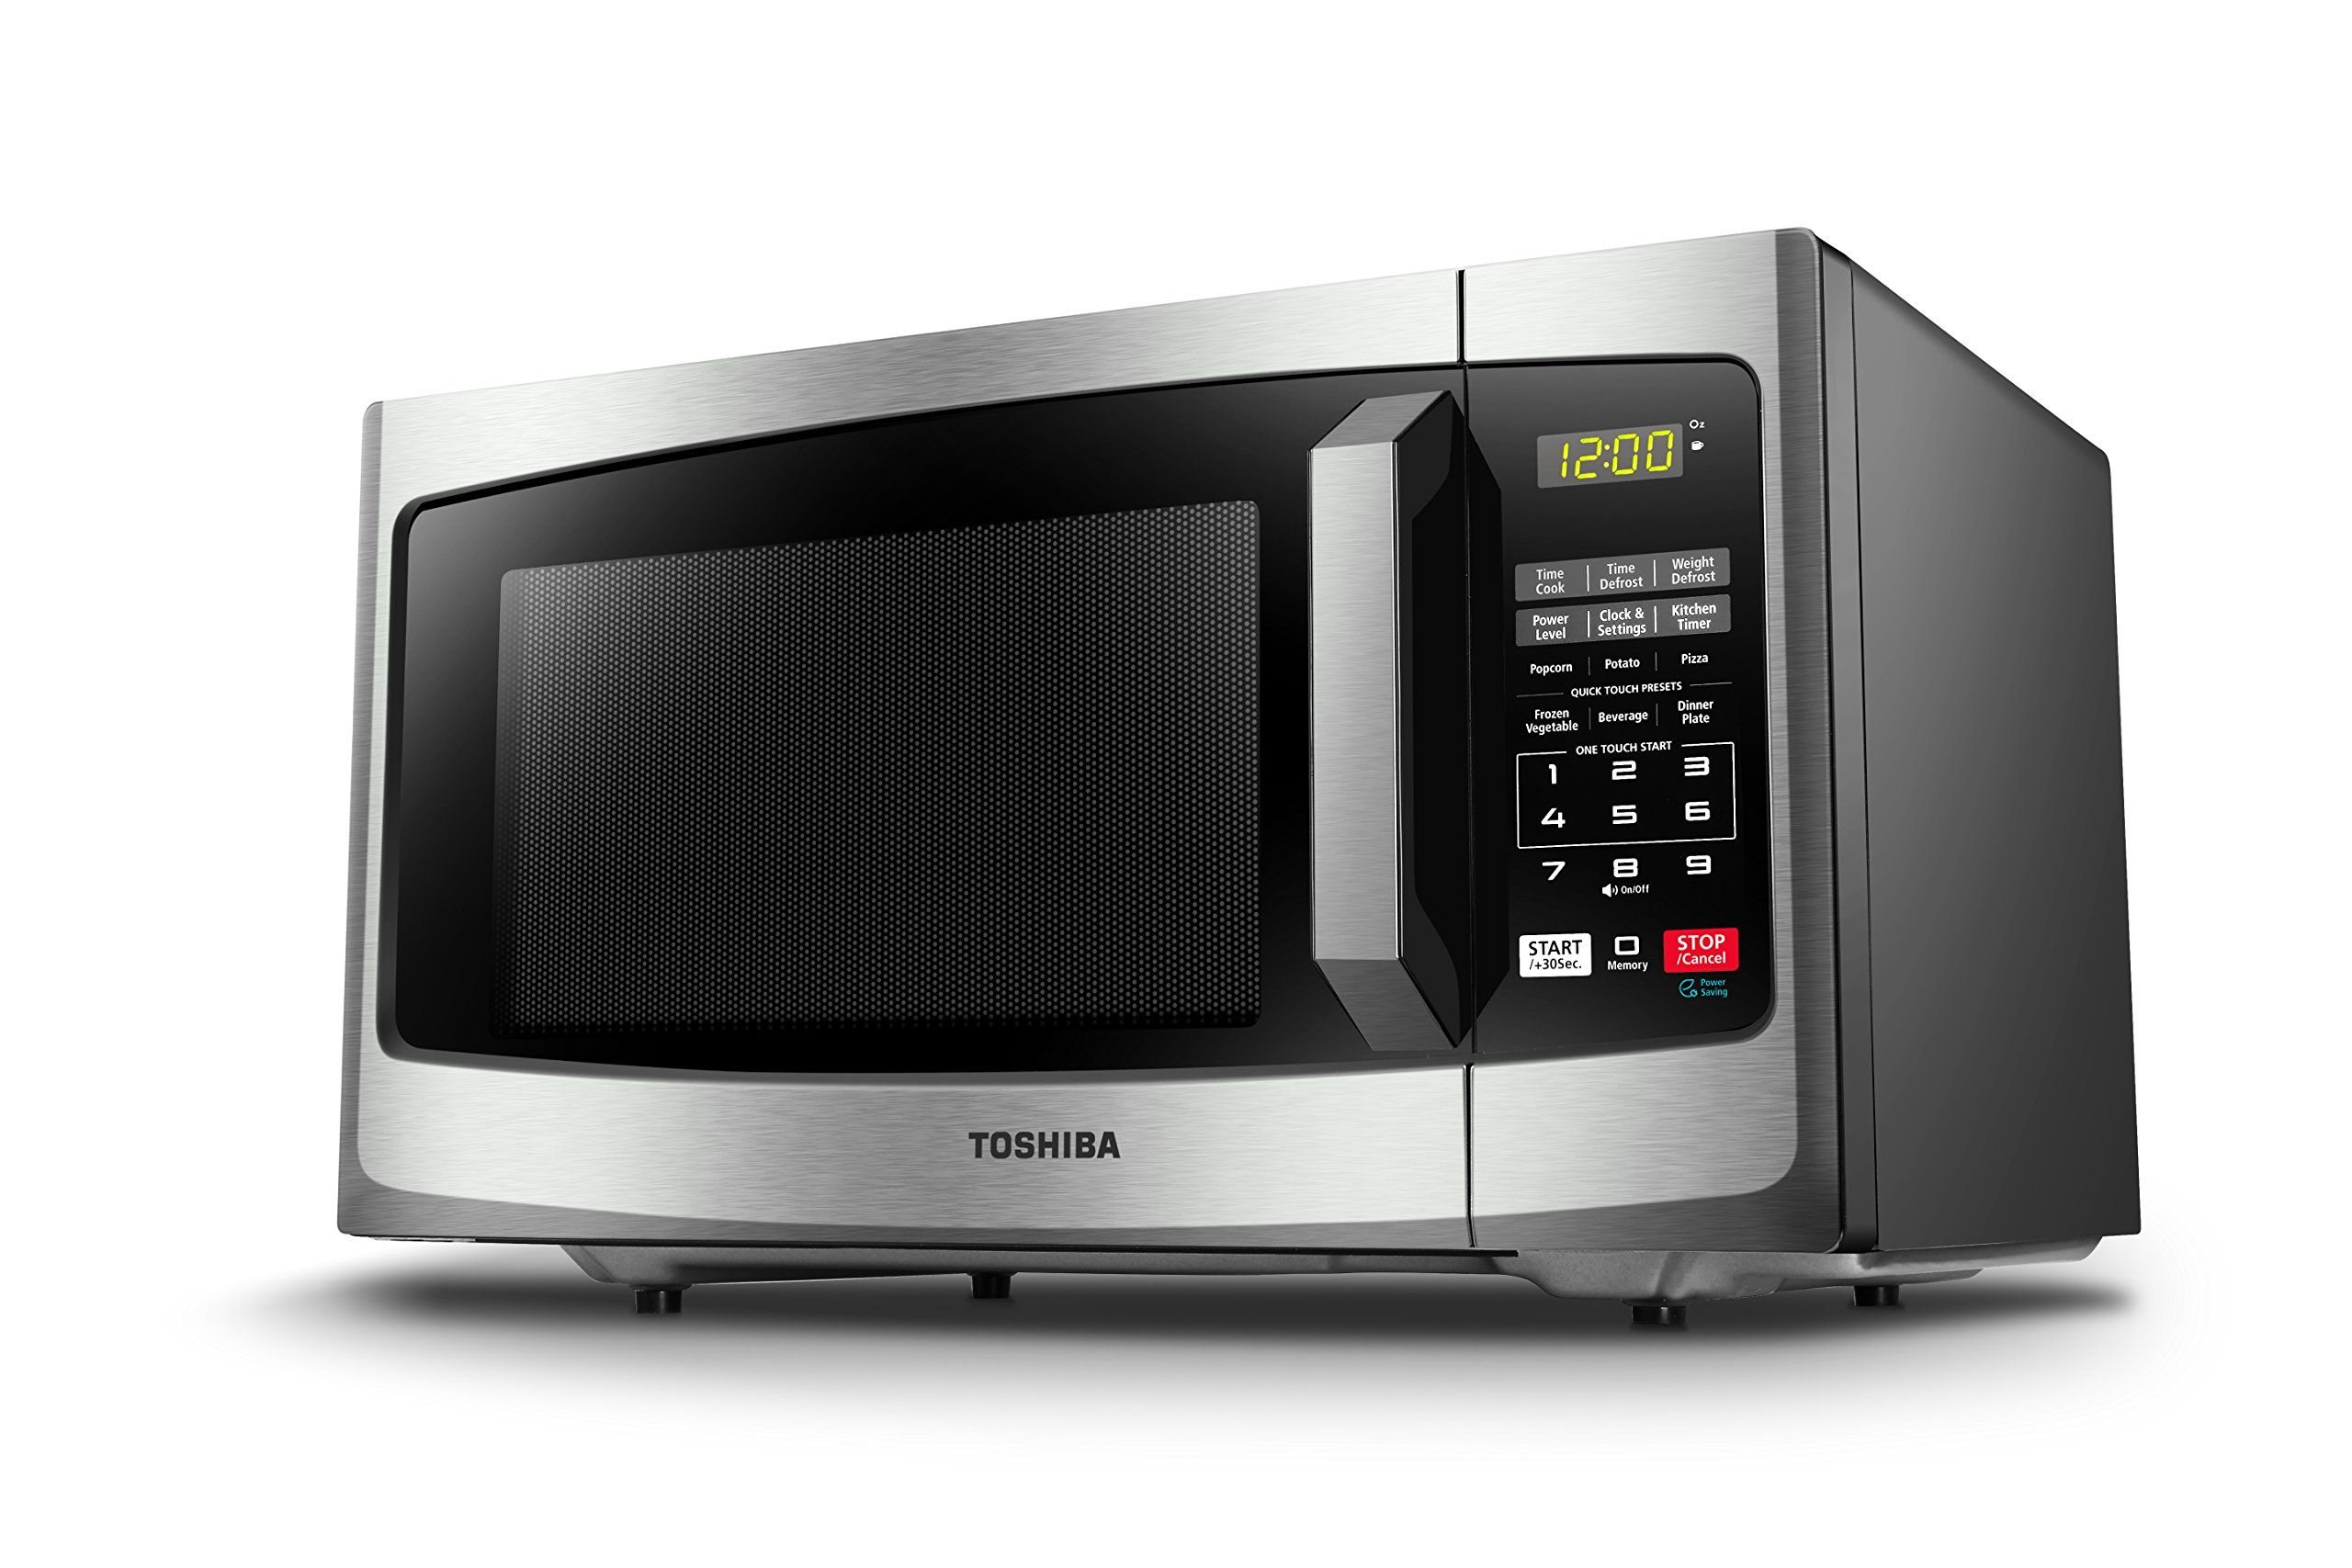 Toshiba Em925a5ass Microwave Oven With Sound On Off Eco Mode And